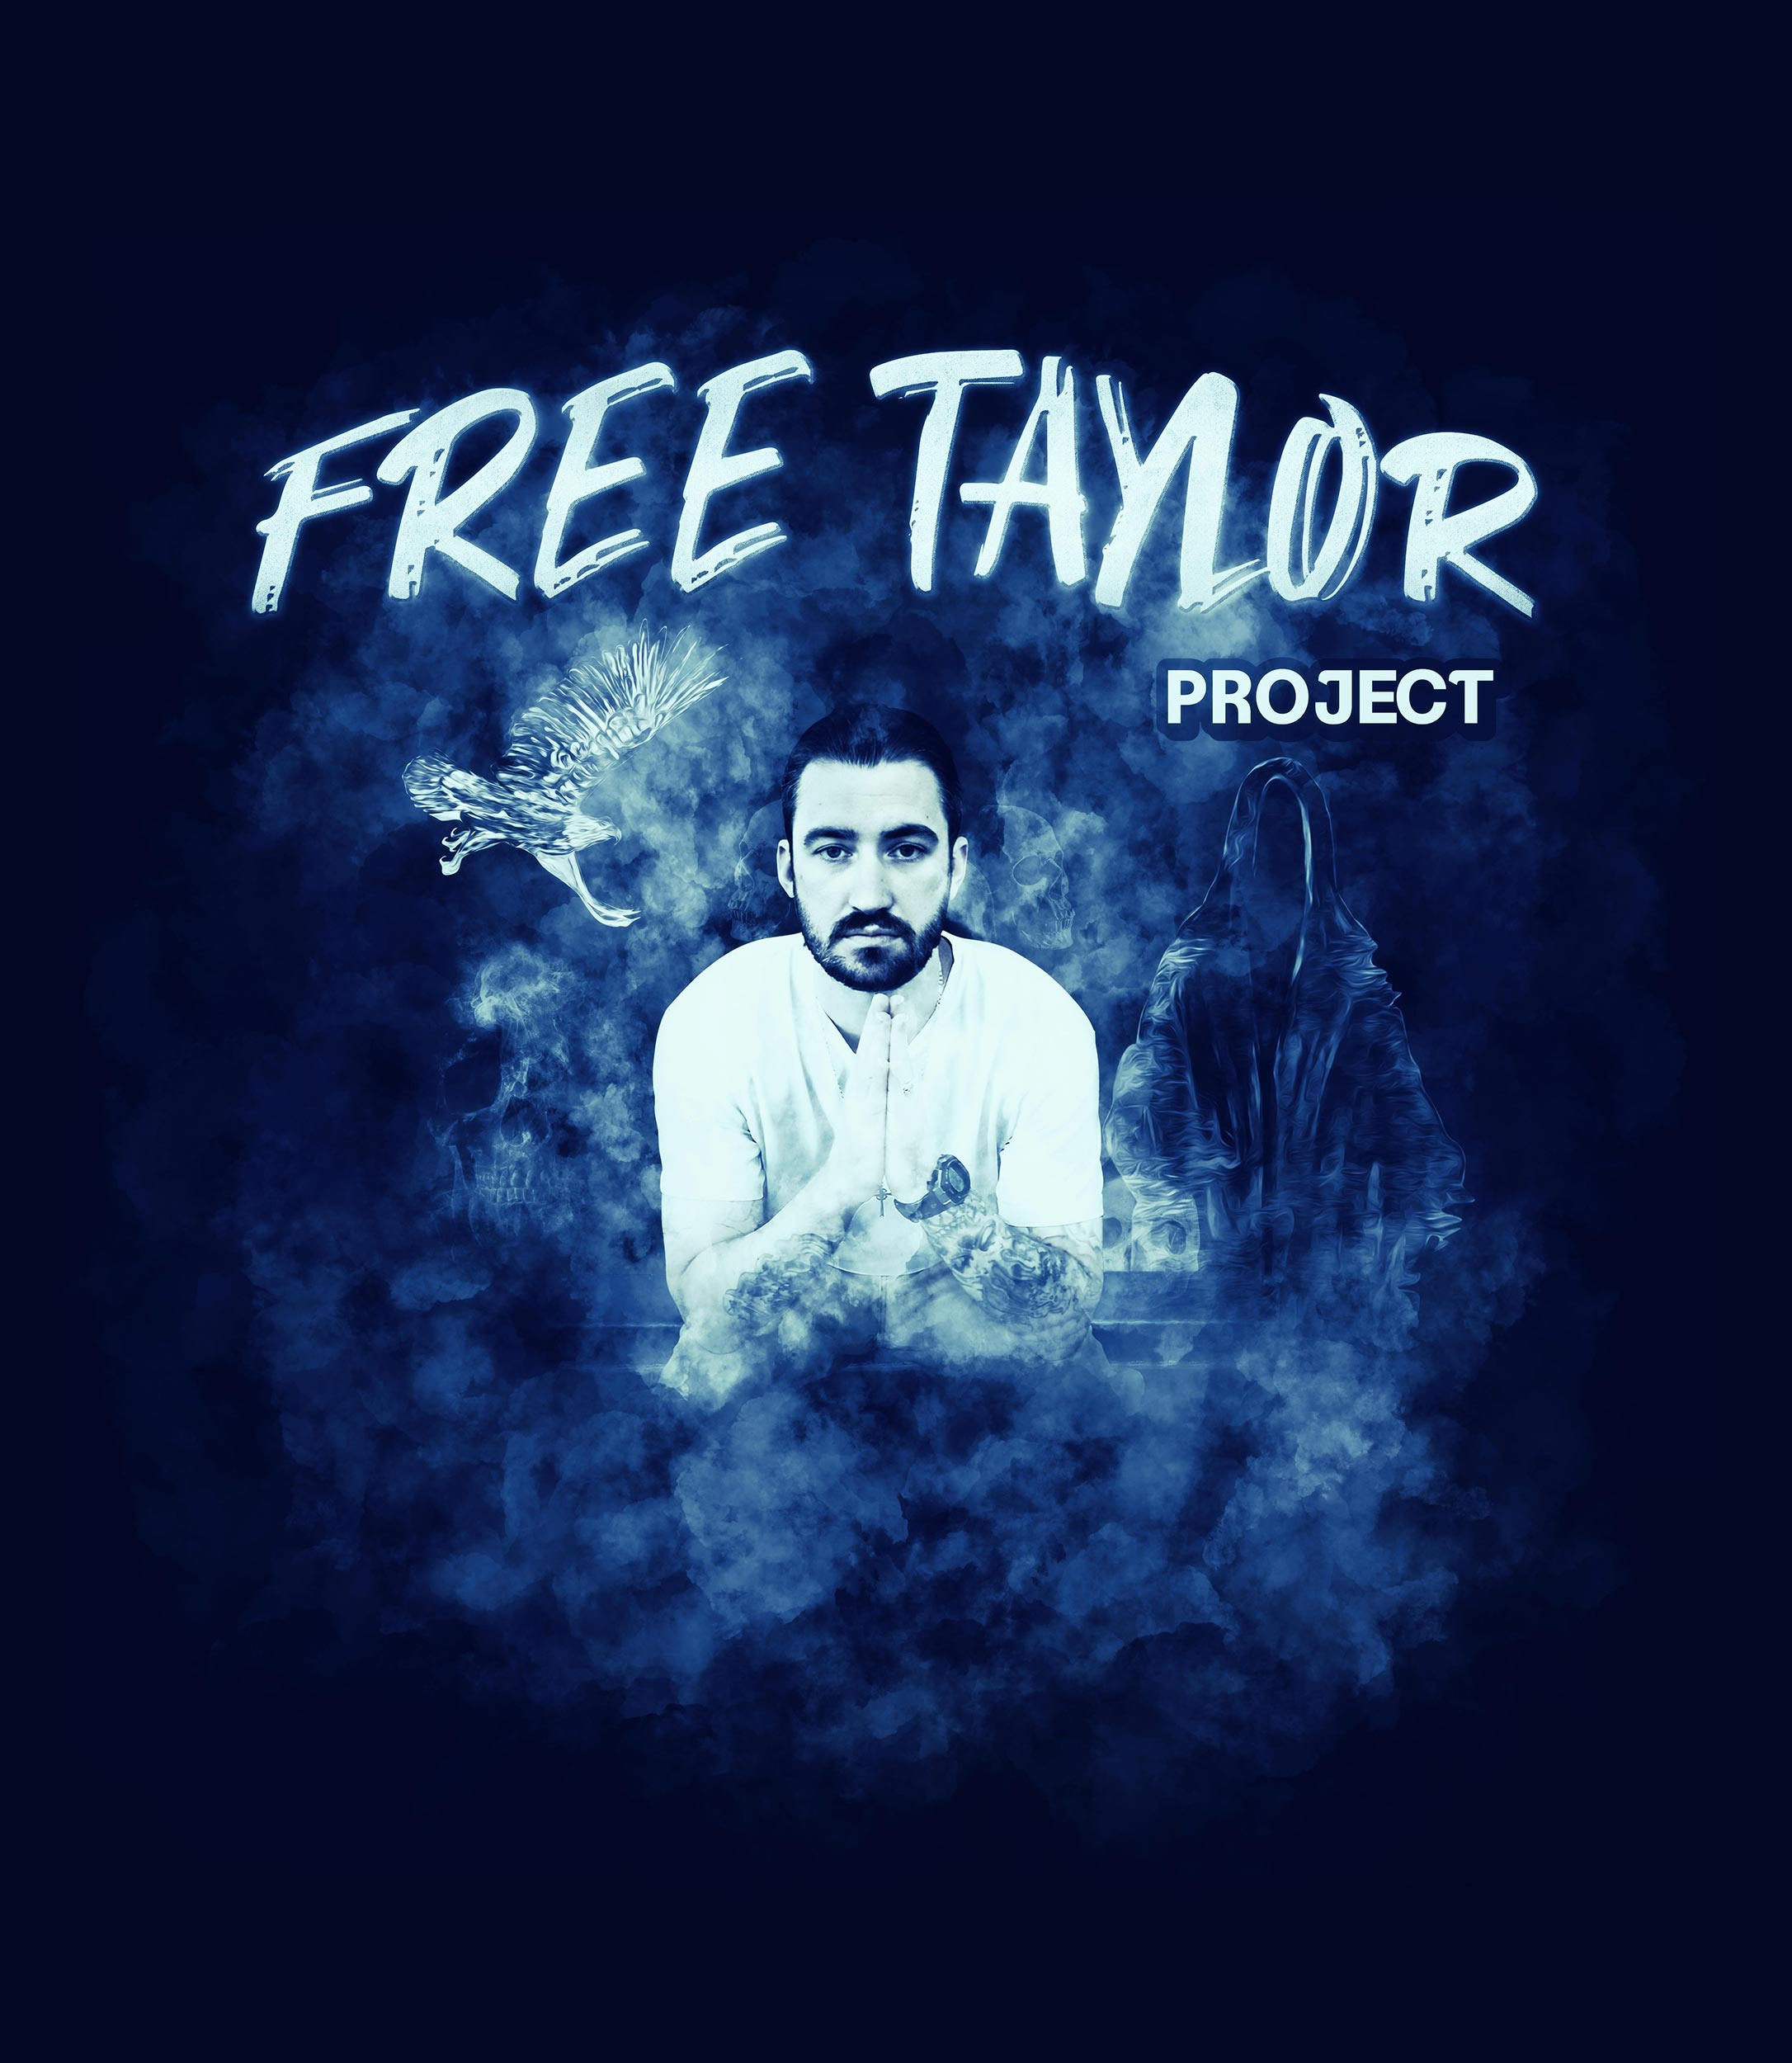 Free Taylor Project